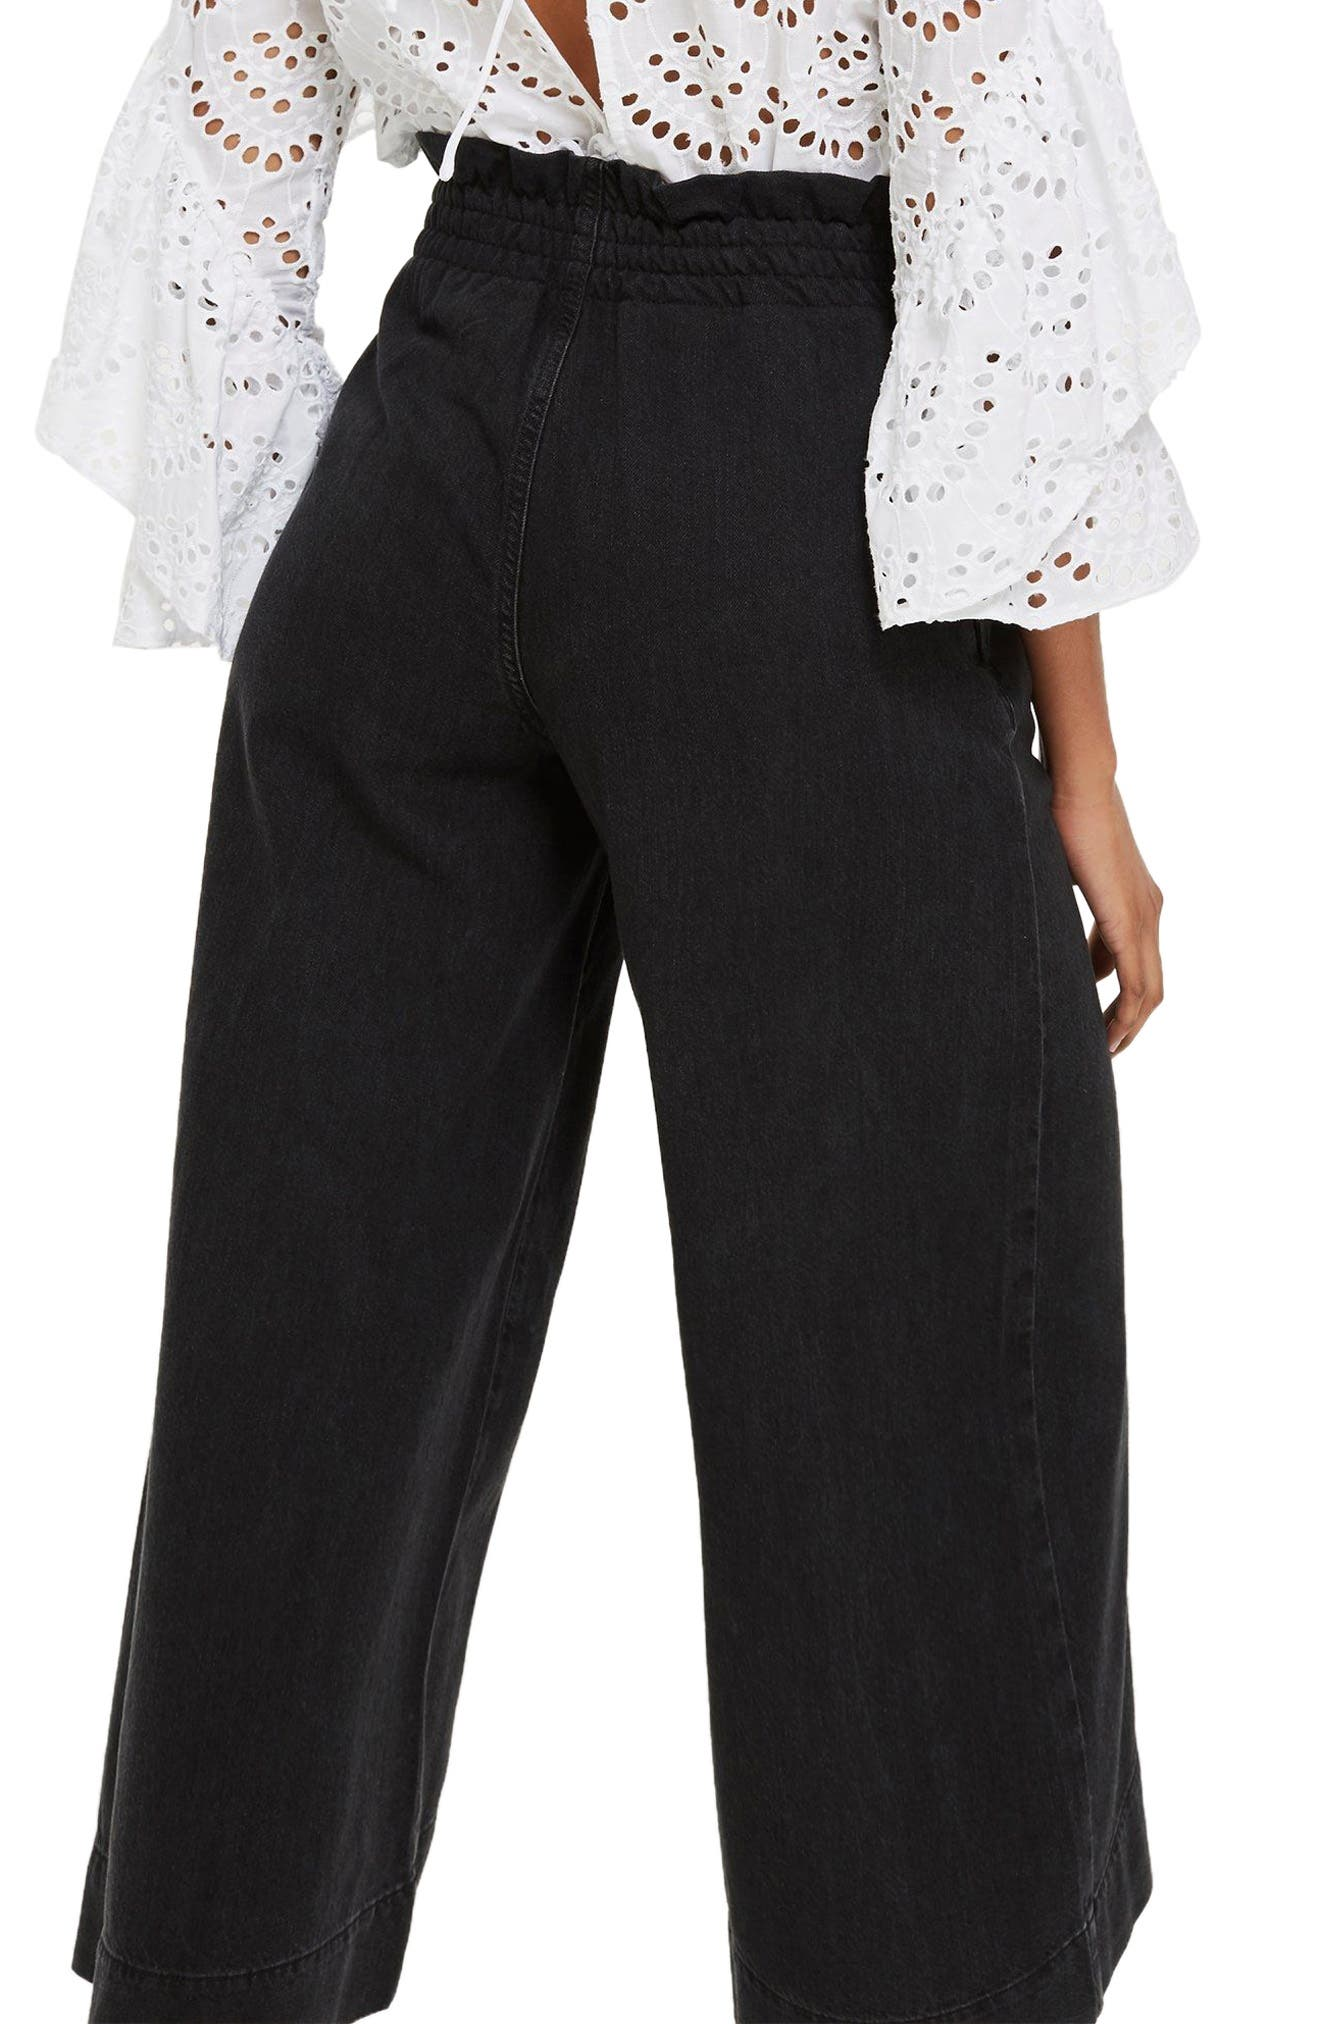 Wide Leg Crop Jeans,                             Alternate thumbnail 2, color,                             Washed Black